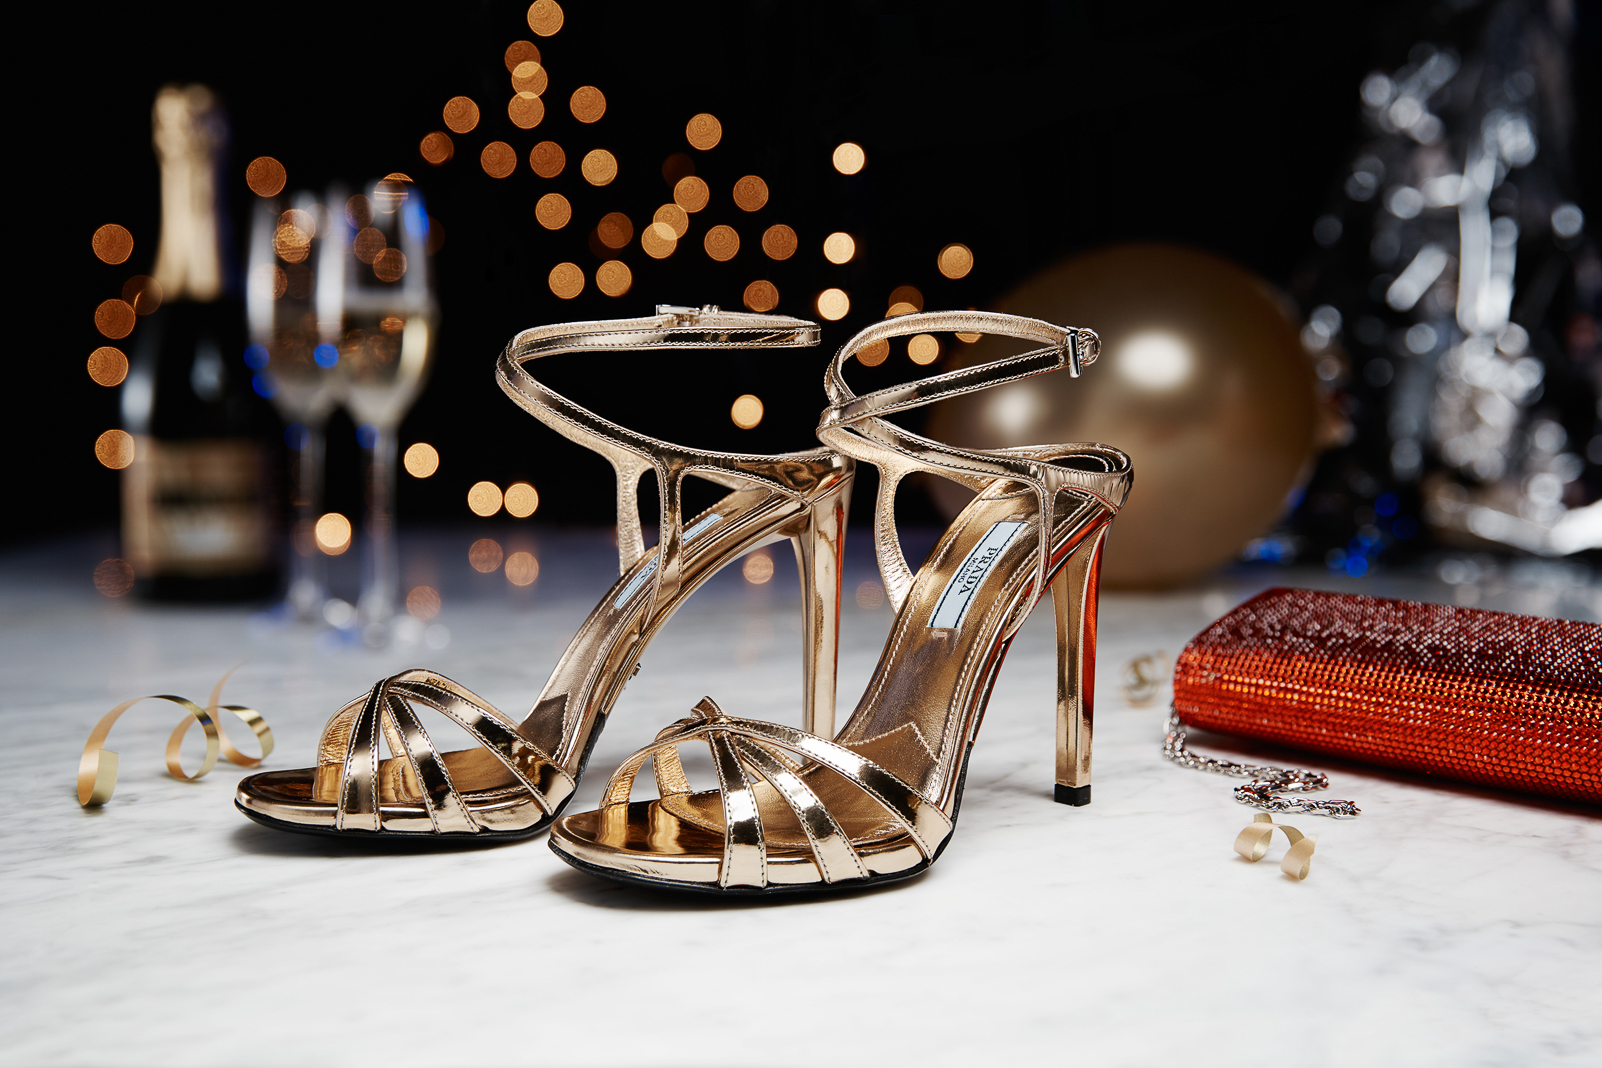 NYE_DRESSING_Statement_Shoes_WACC_1131680824_EDITORIAL_073-083_HELICON.jpg